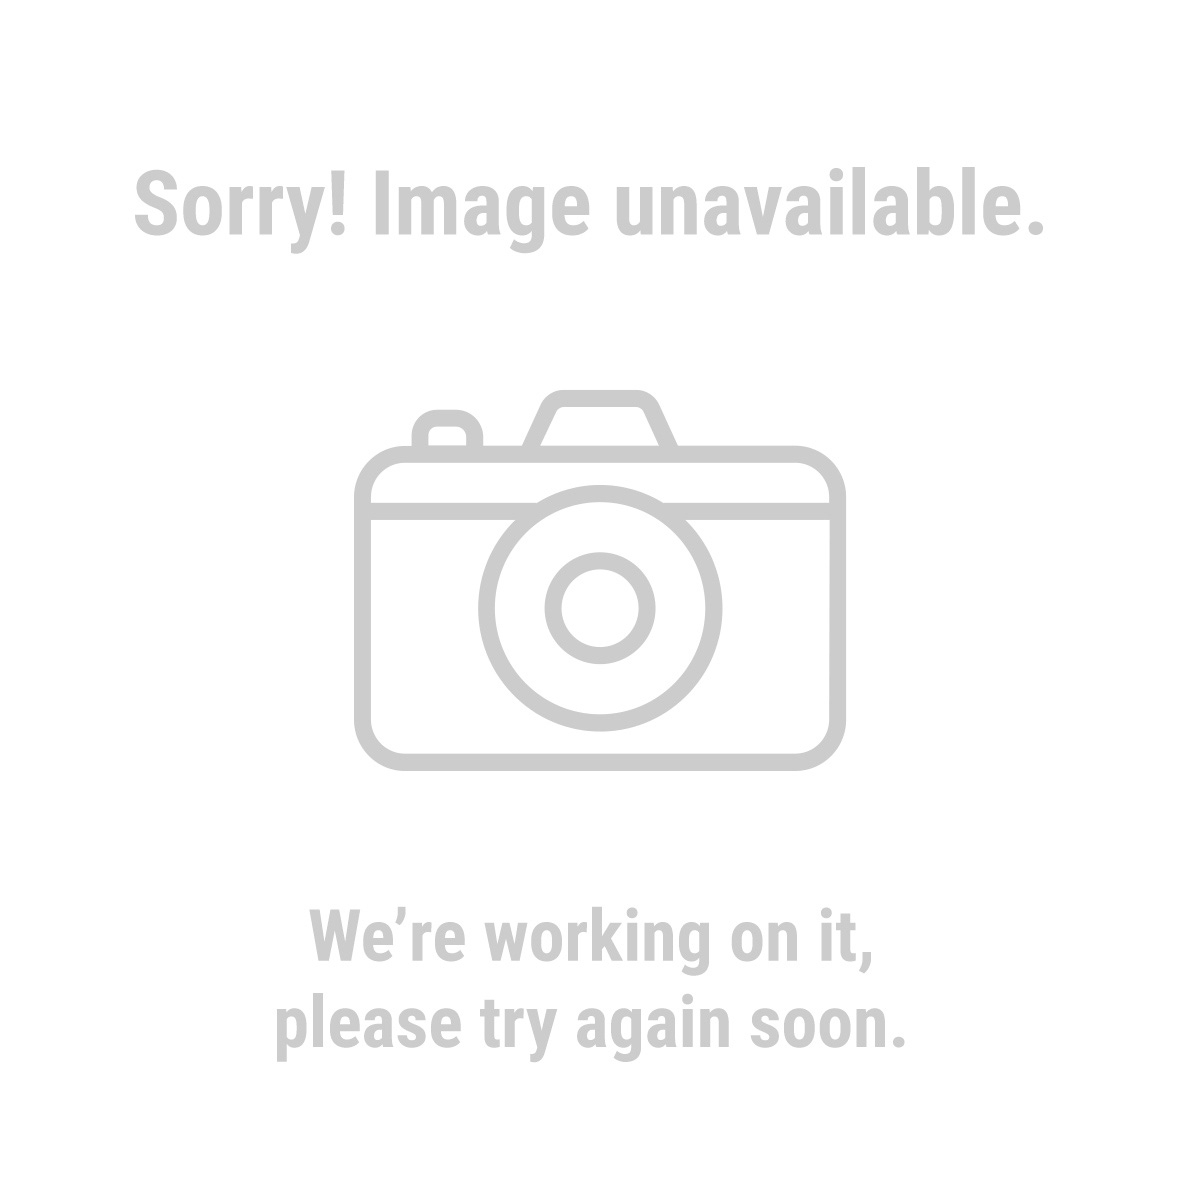 CoverPro 63054 10 Ft. x 20 Ft. Portable Car Canopy